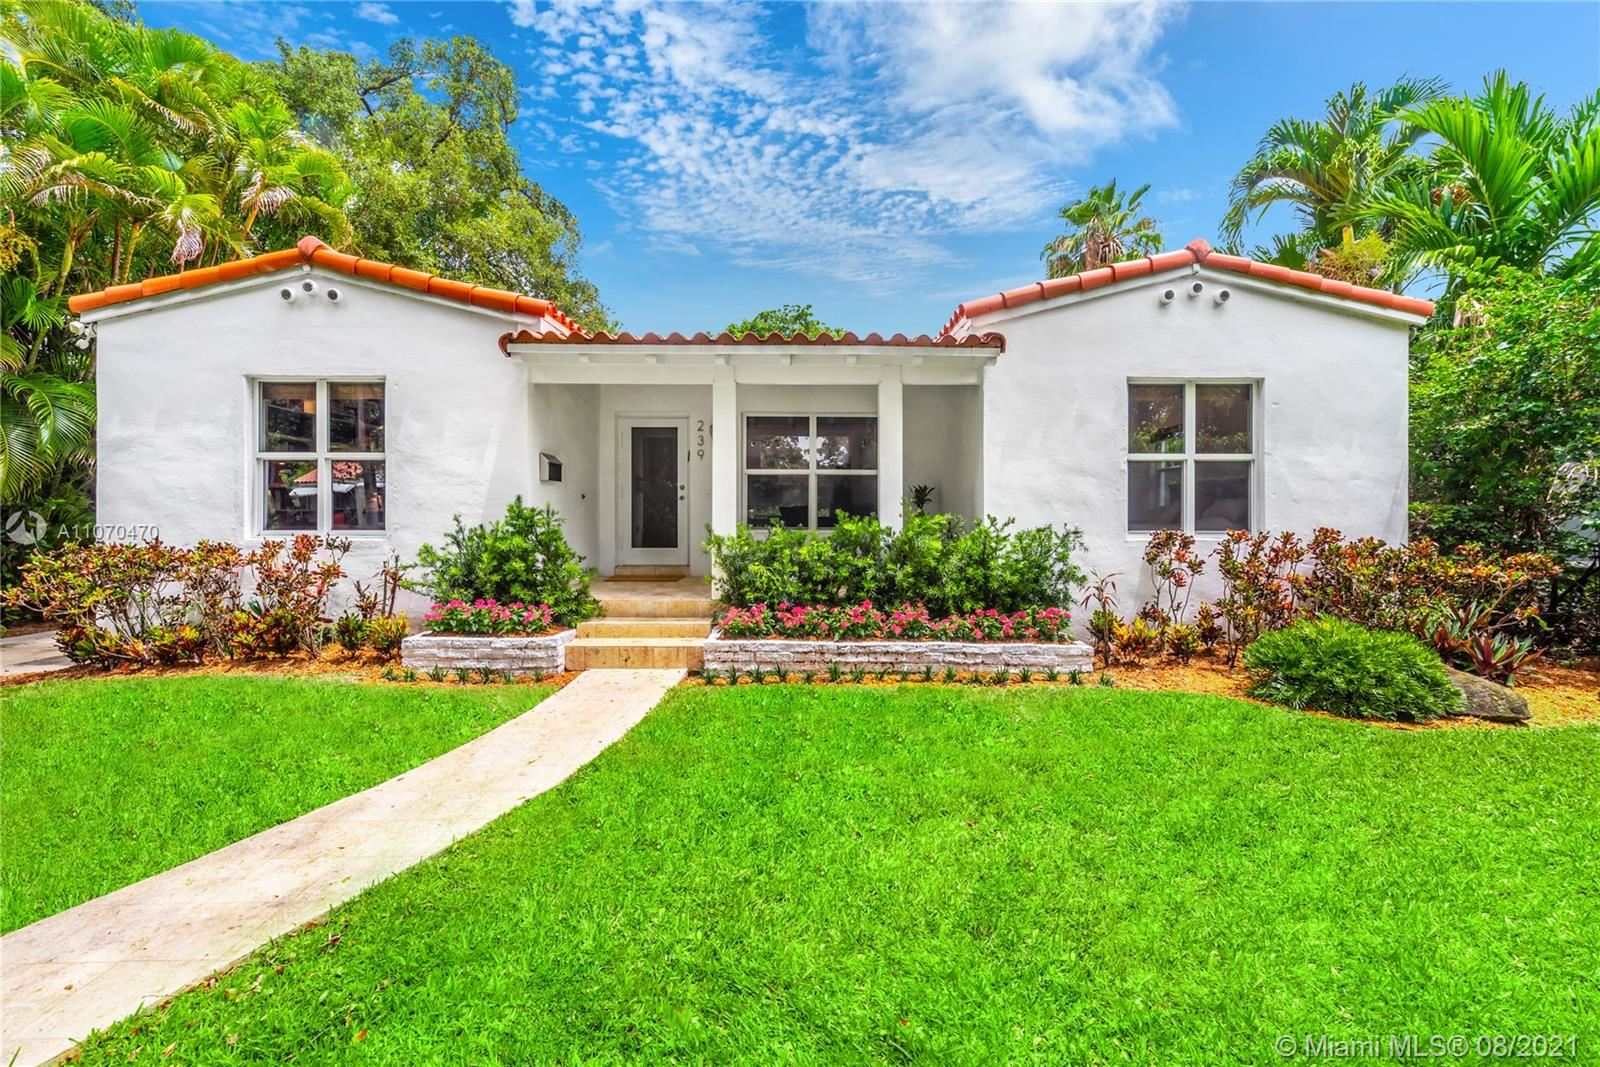 Photo of 239 Fluvia Ave, Coral Gables, FL 33134 (MLS # A11070470)